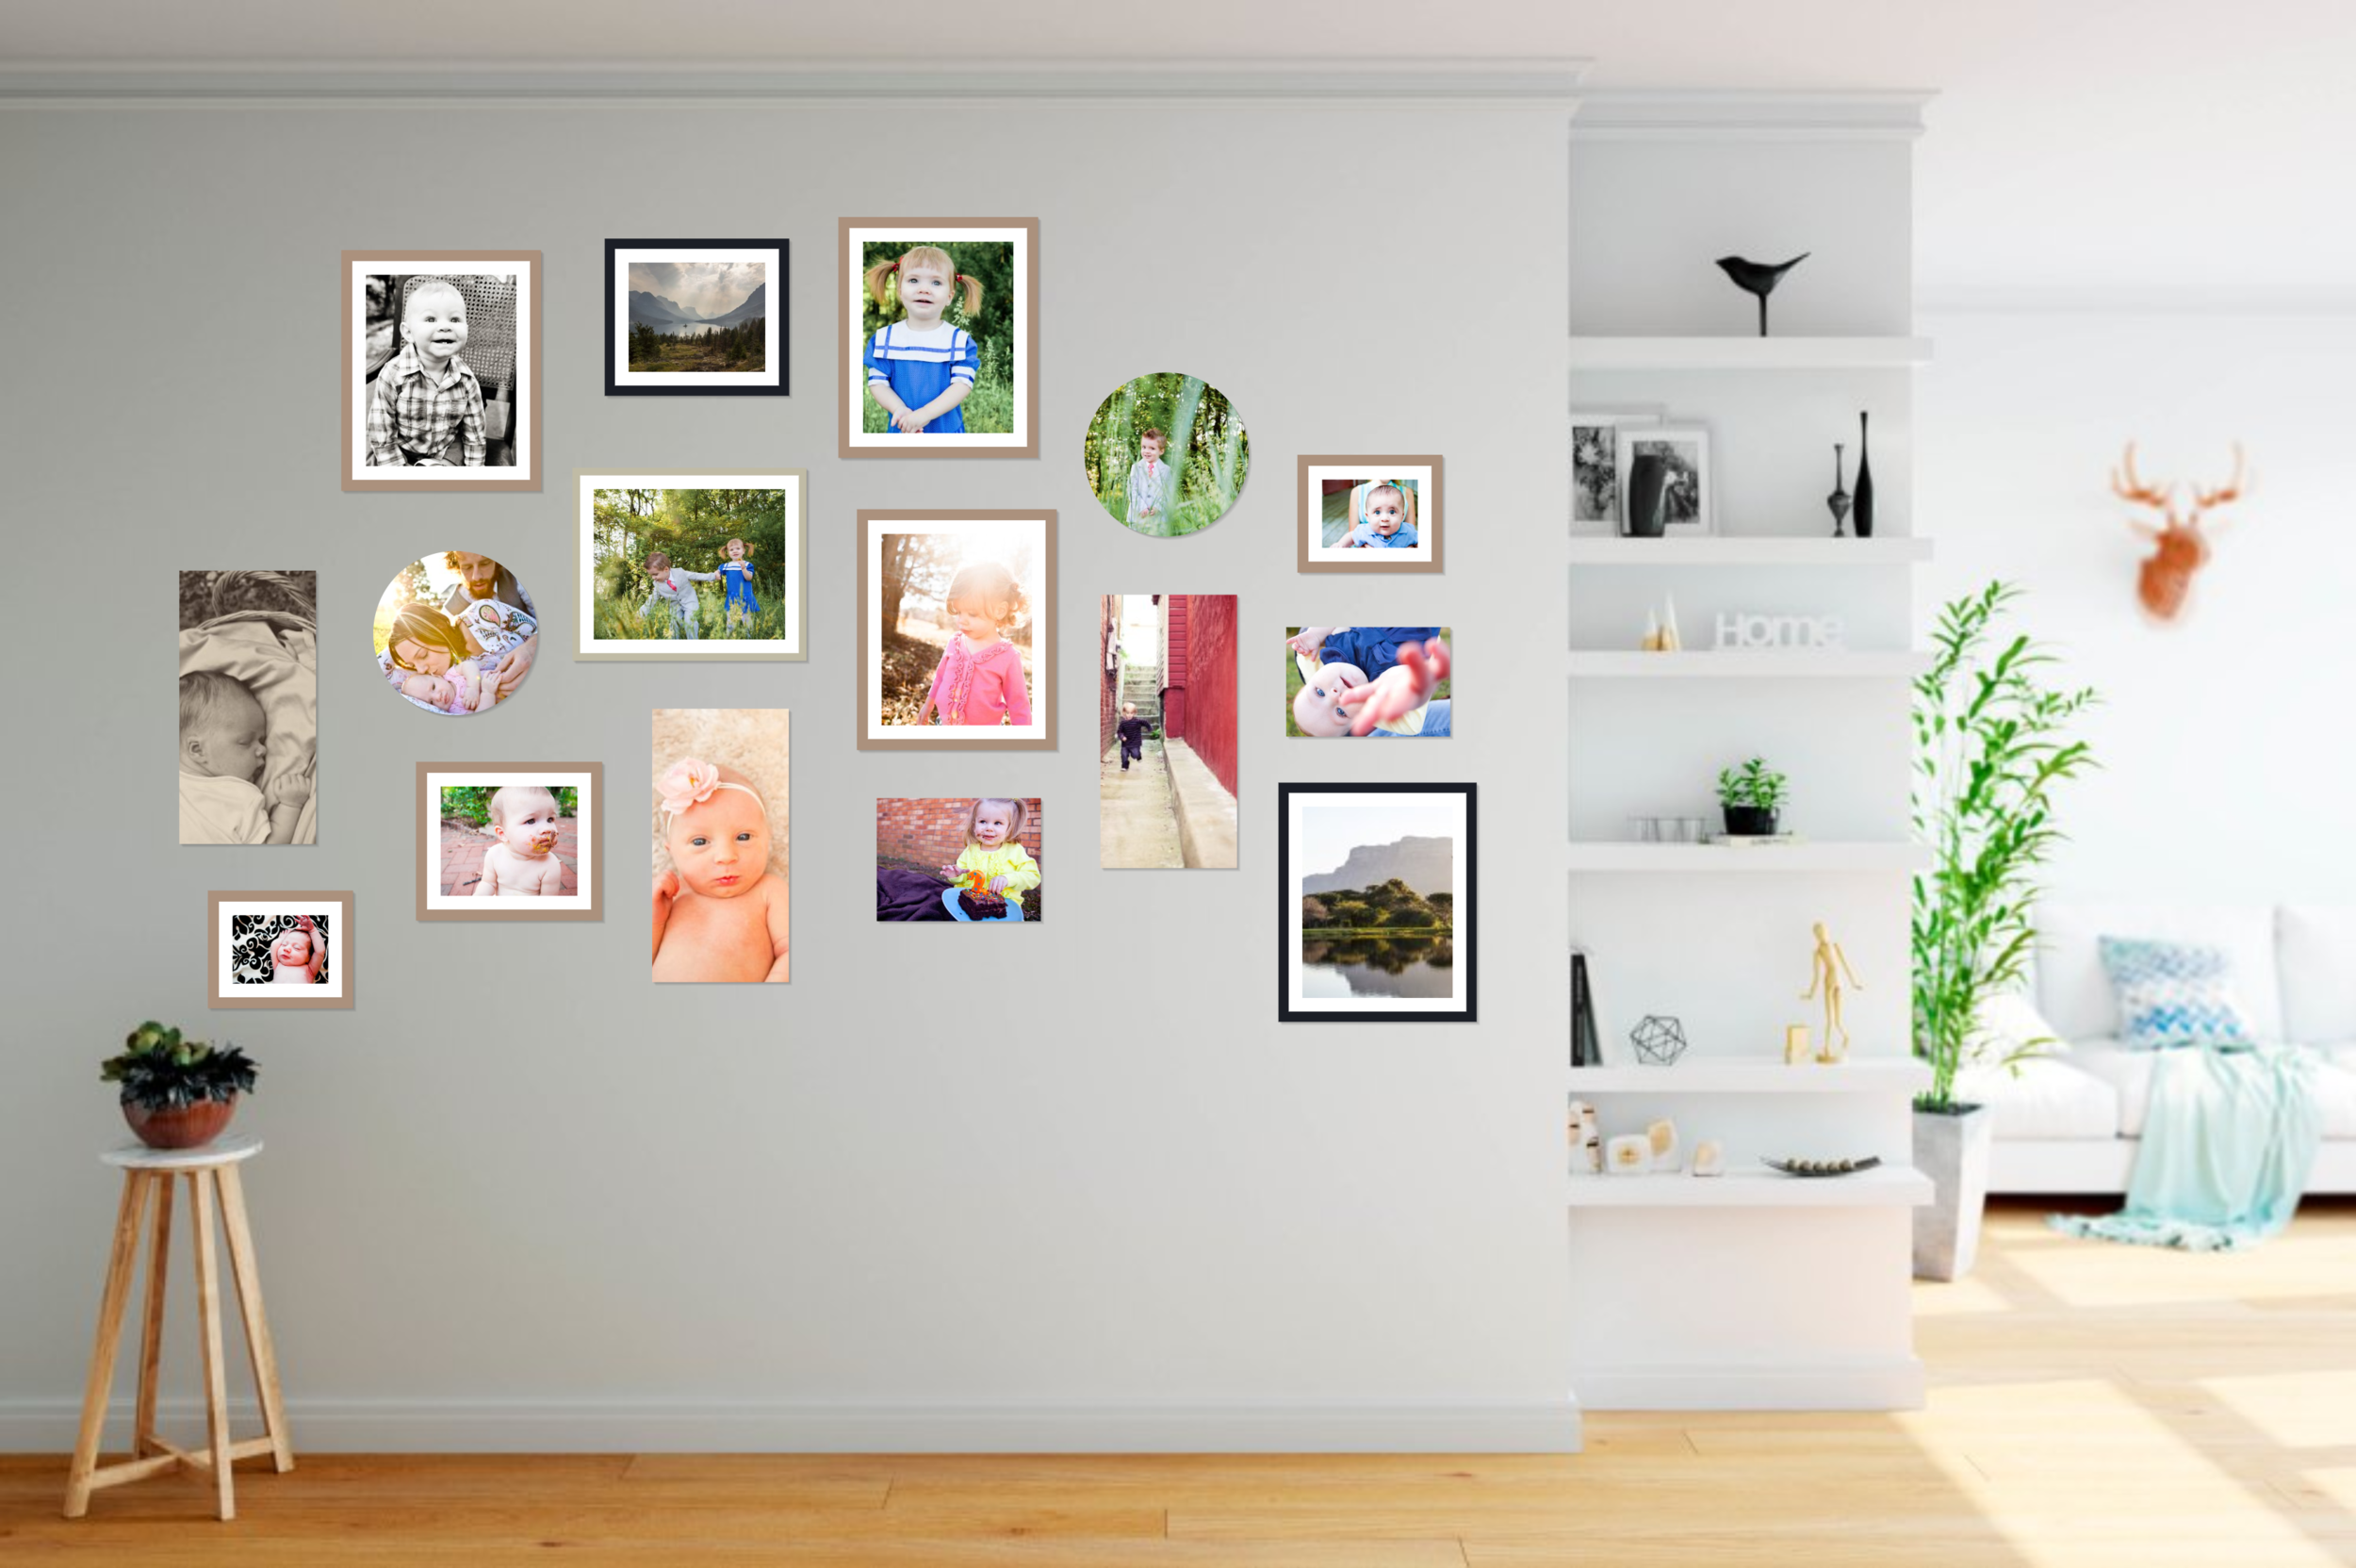 Eclectic wall gallery with photos